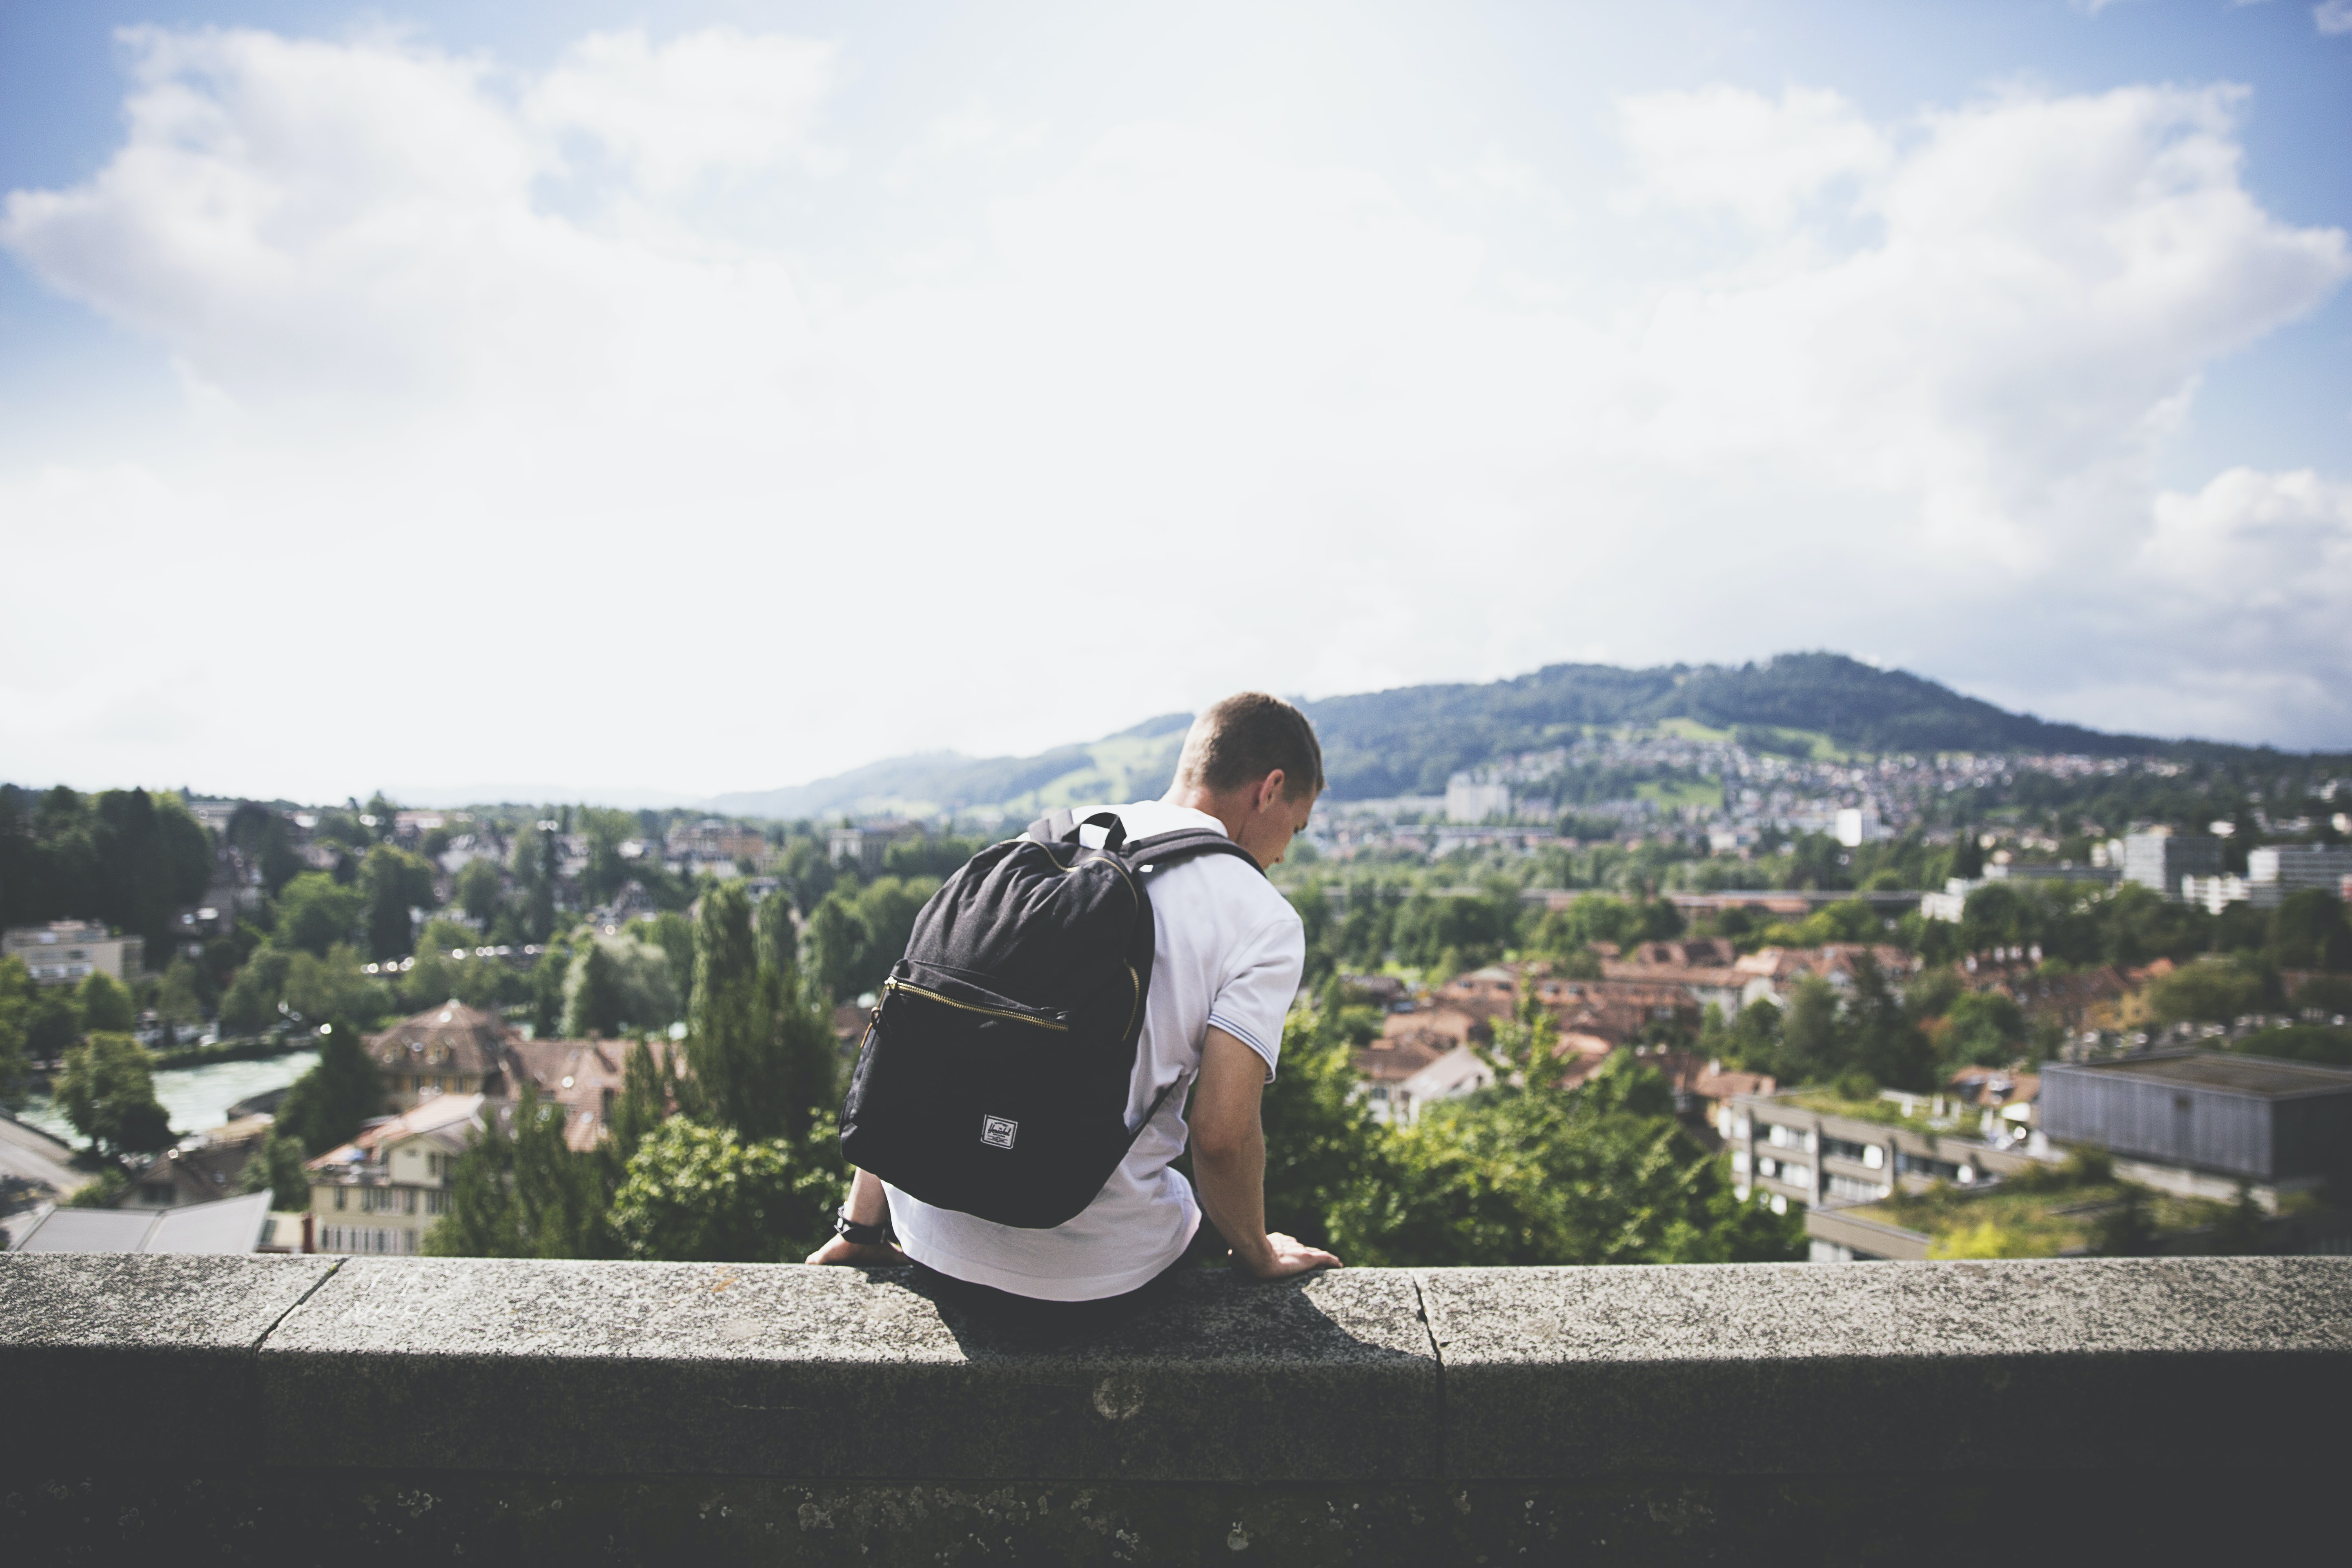 A man with a backpack sitting on a ledge overlooking a picturesque town